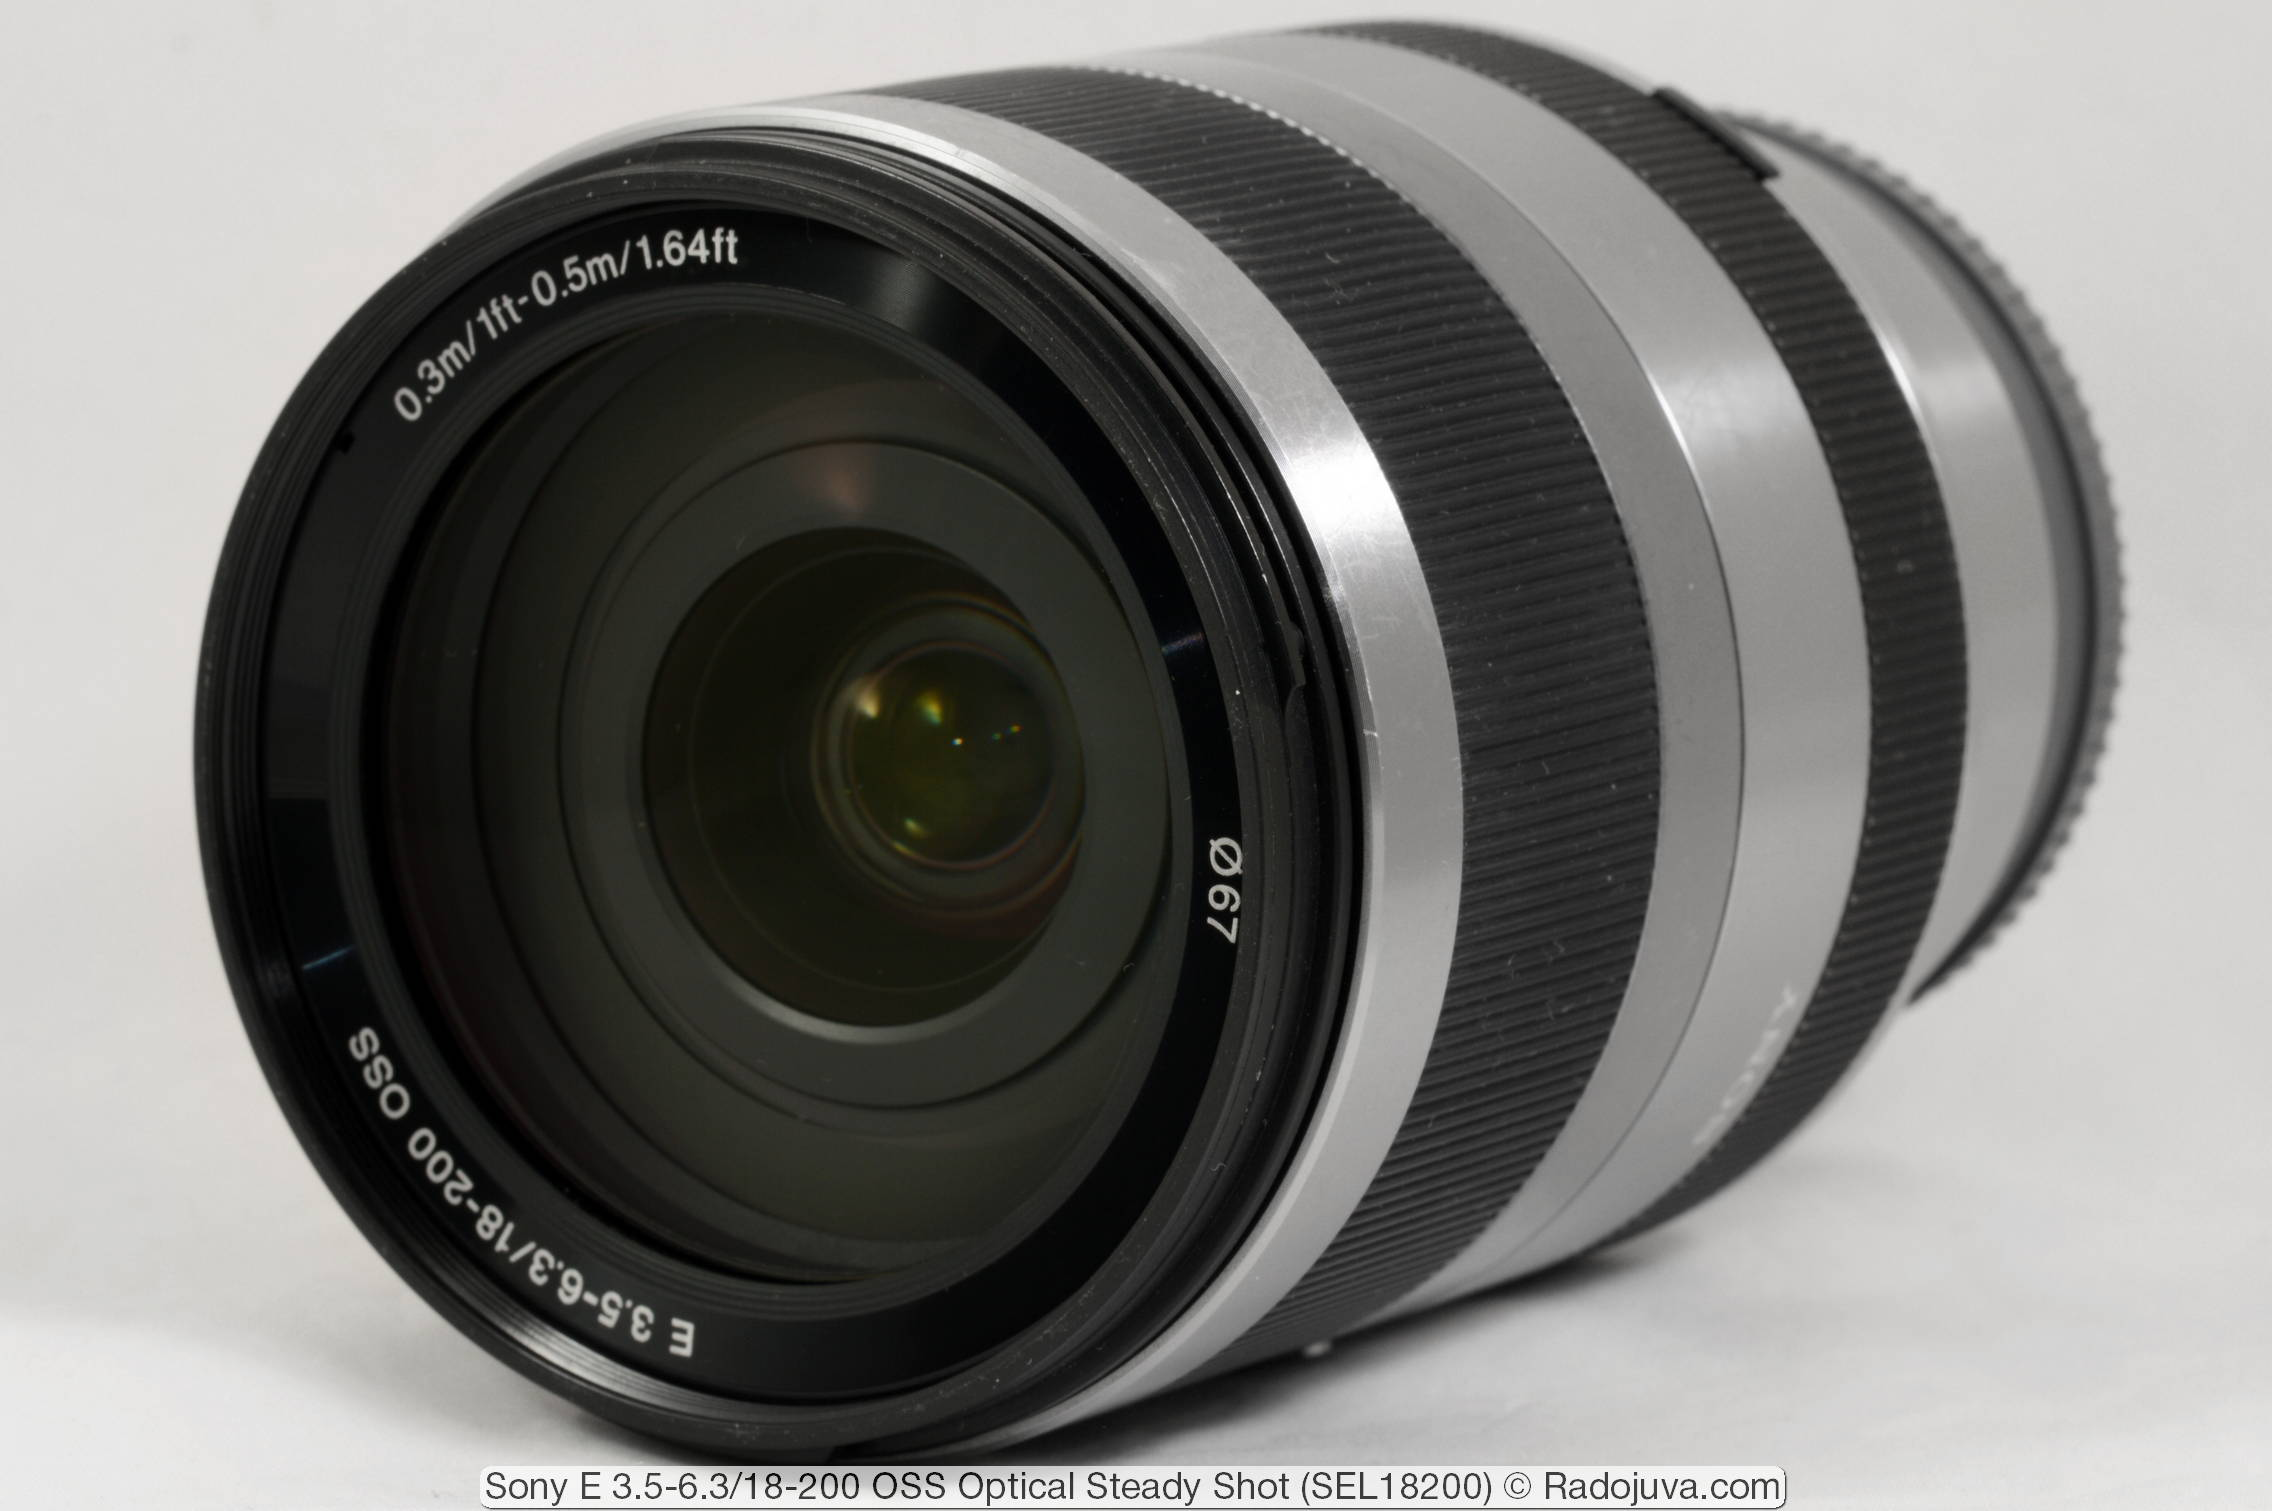 Sony E 3.5-6.3/18-200 OSS (Optical Steady Shot, E-mount)